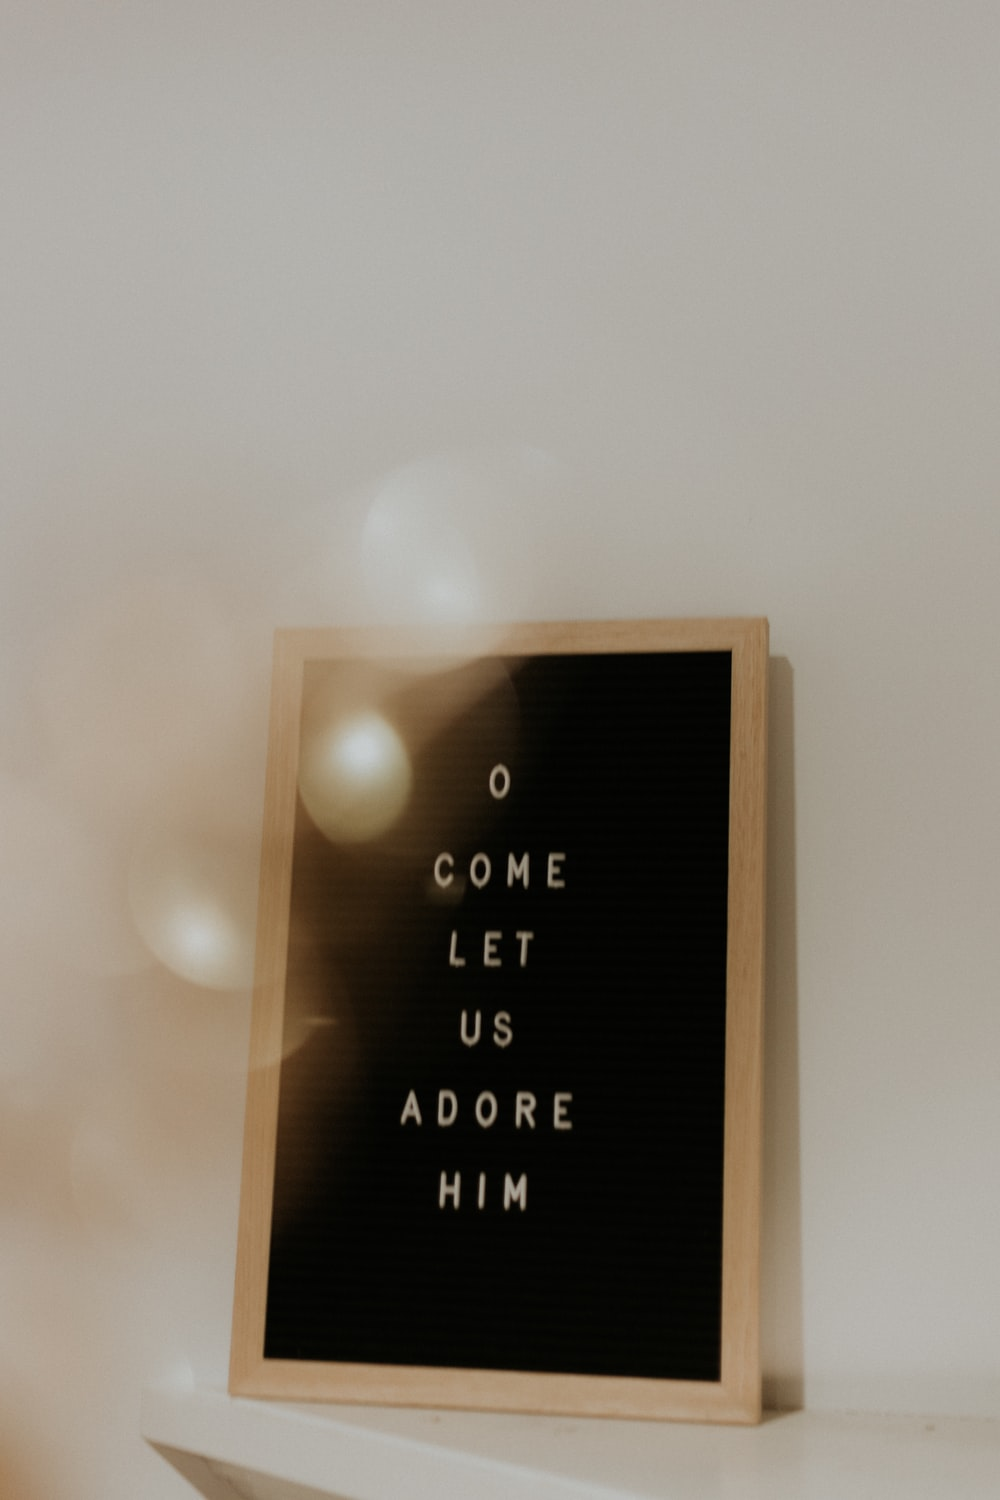 shallow focus photo of come let us adore him quoteboard with brown wooden frame